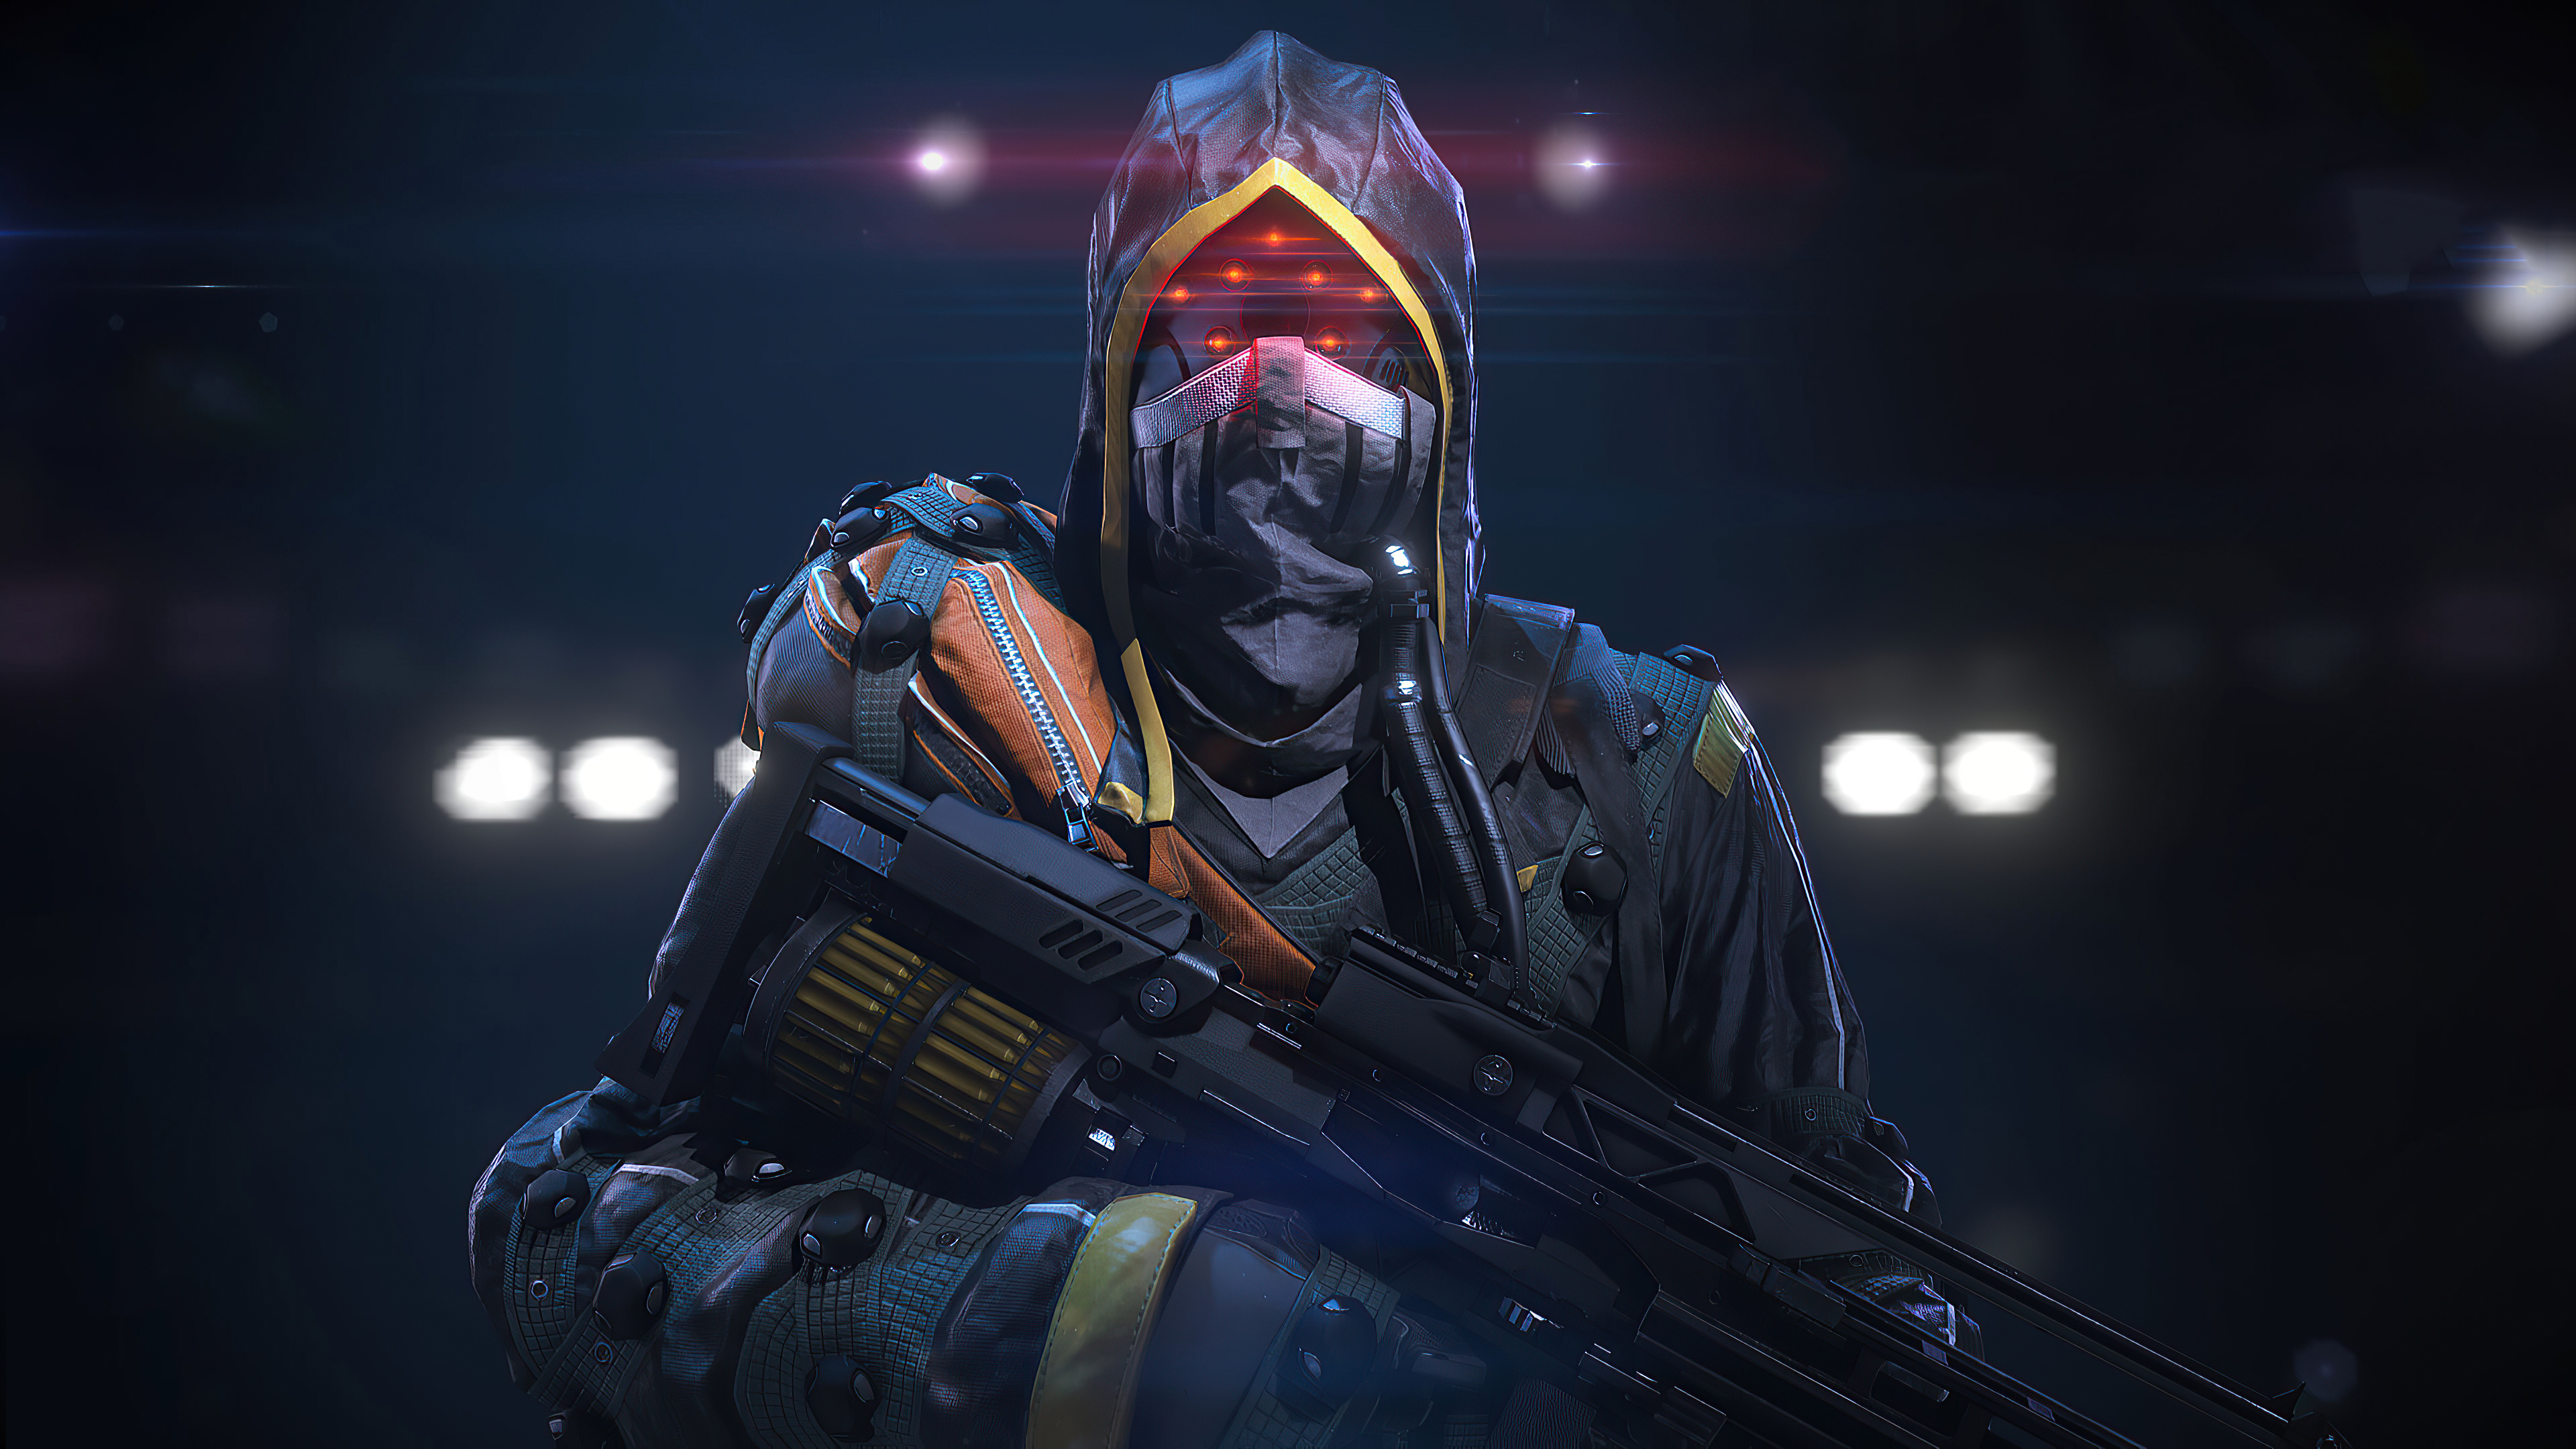 Killzone Shadow Fall Helghast Terrorist Hd Games 4k Wallpapers Images Backgrounds Photos And Pictures